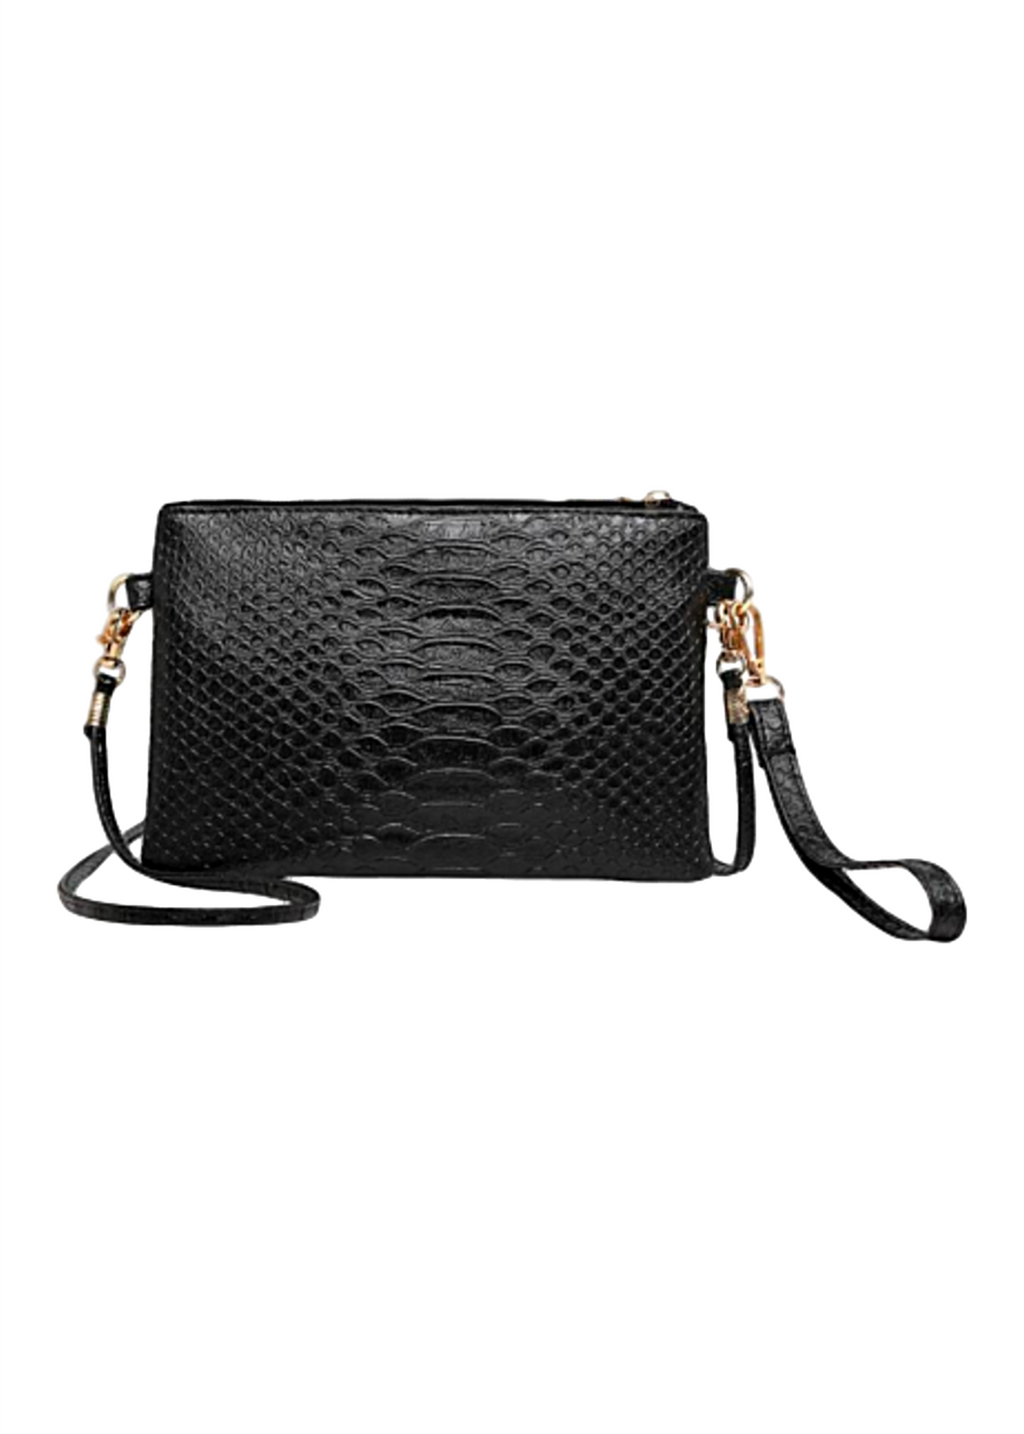 SOHO BAG BLACK